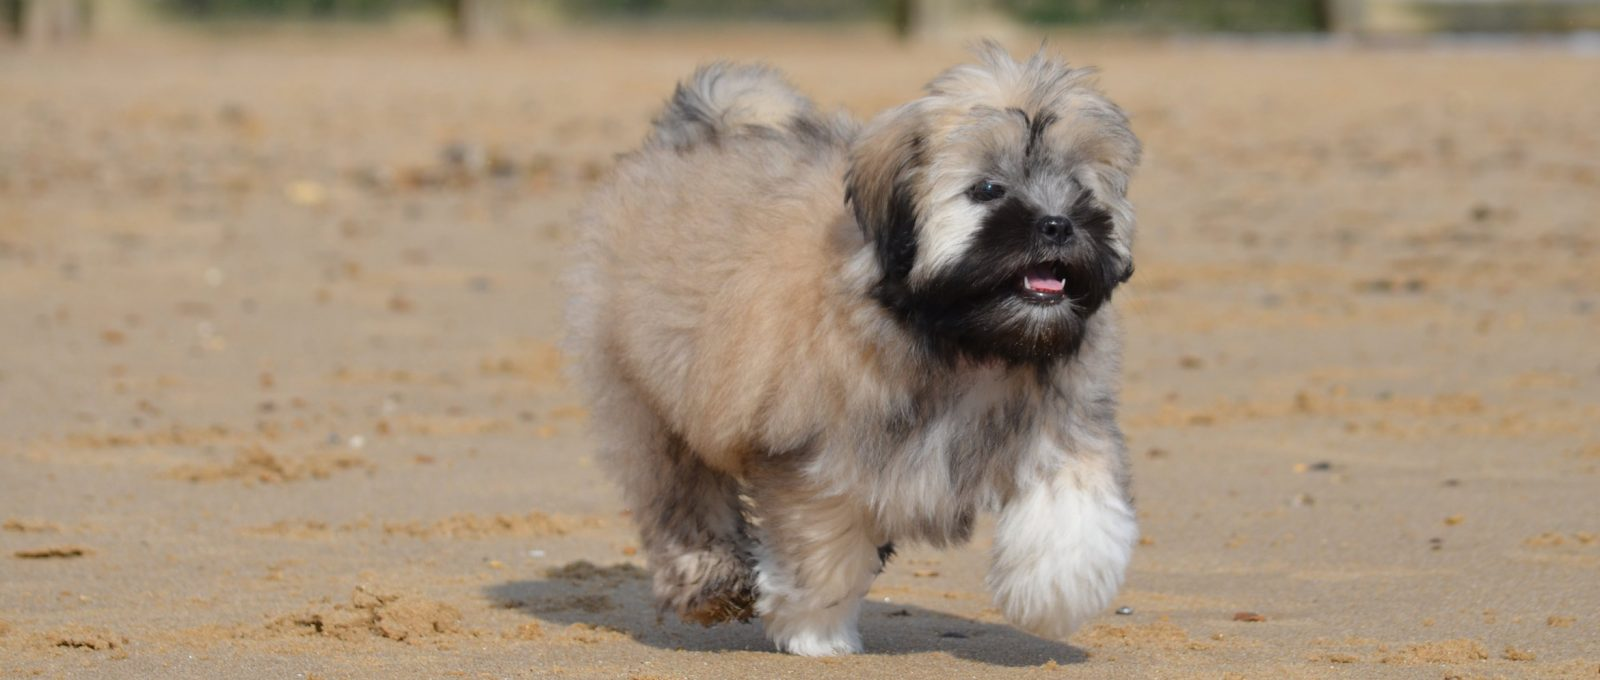 Lhasa Apso puppy running along the sand on the beach